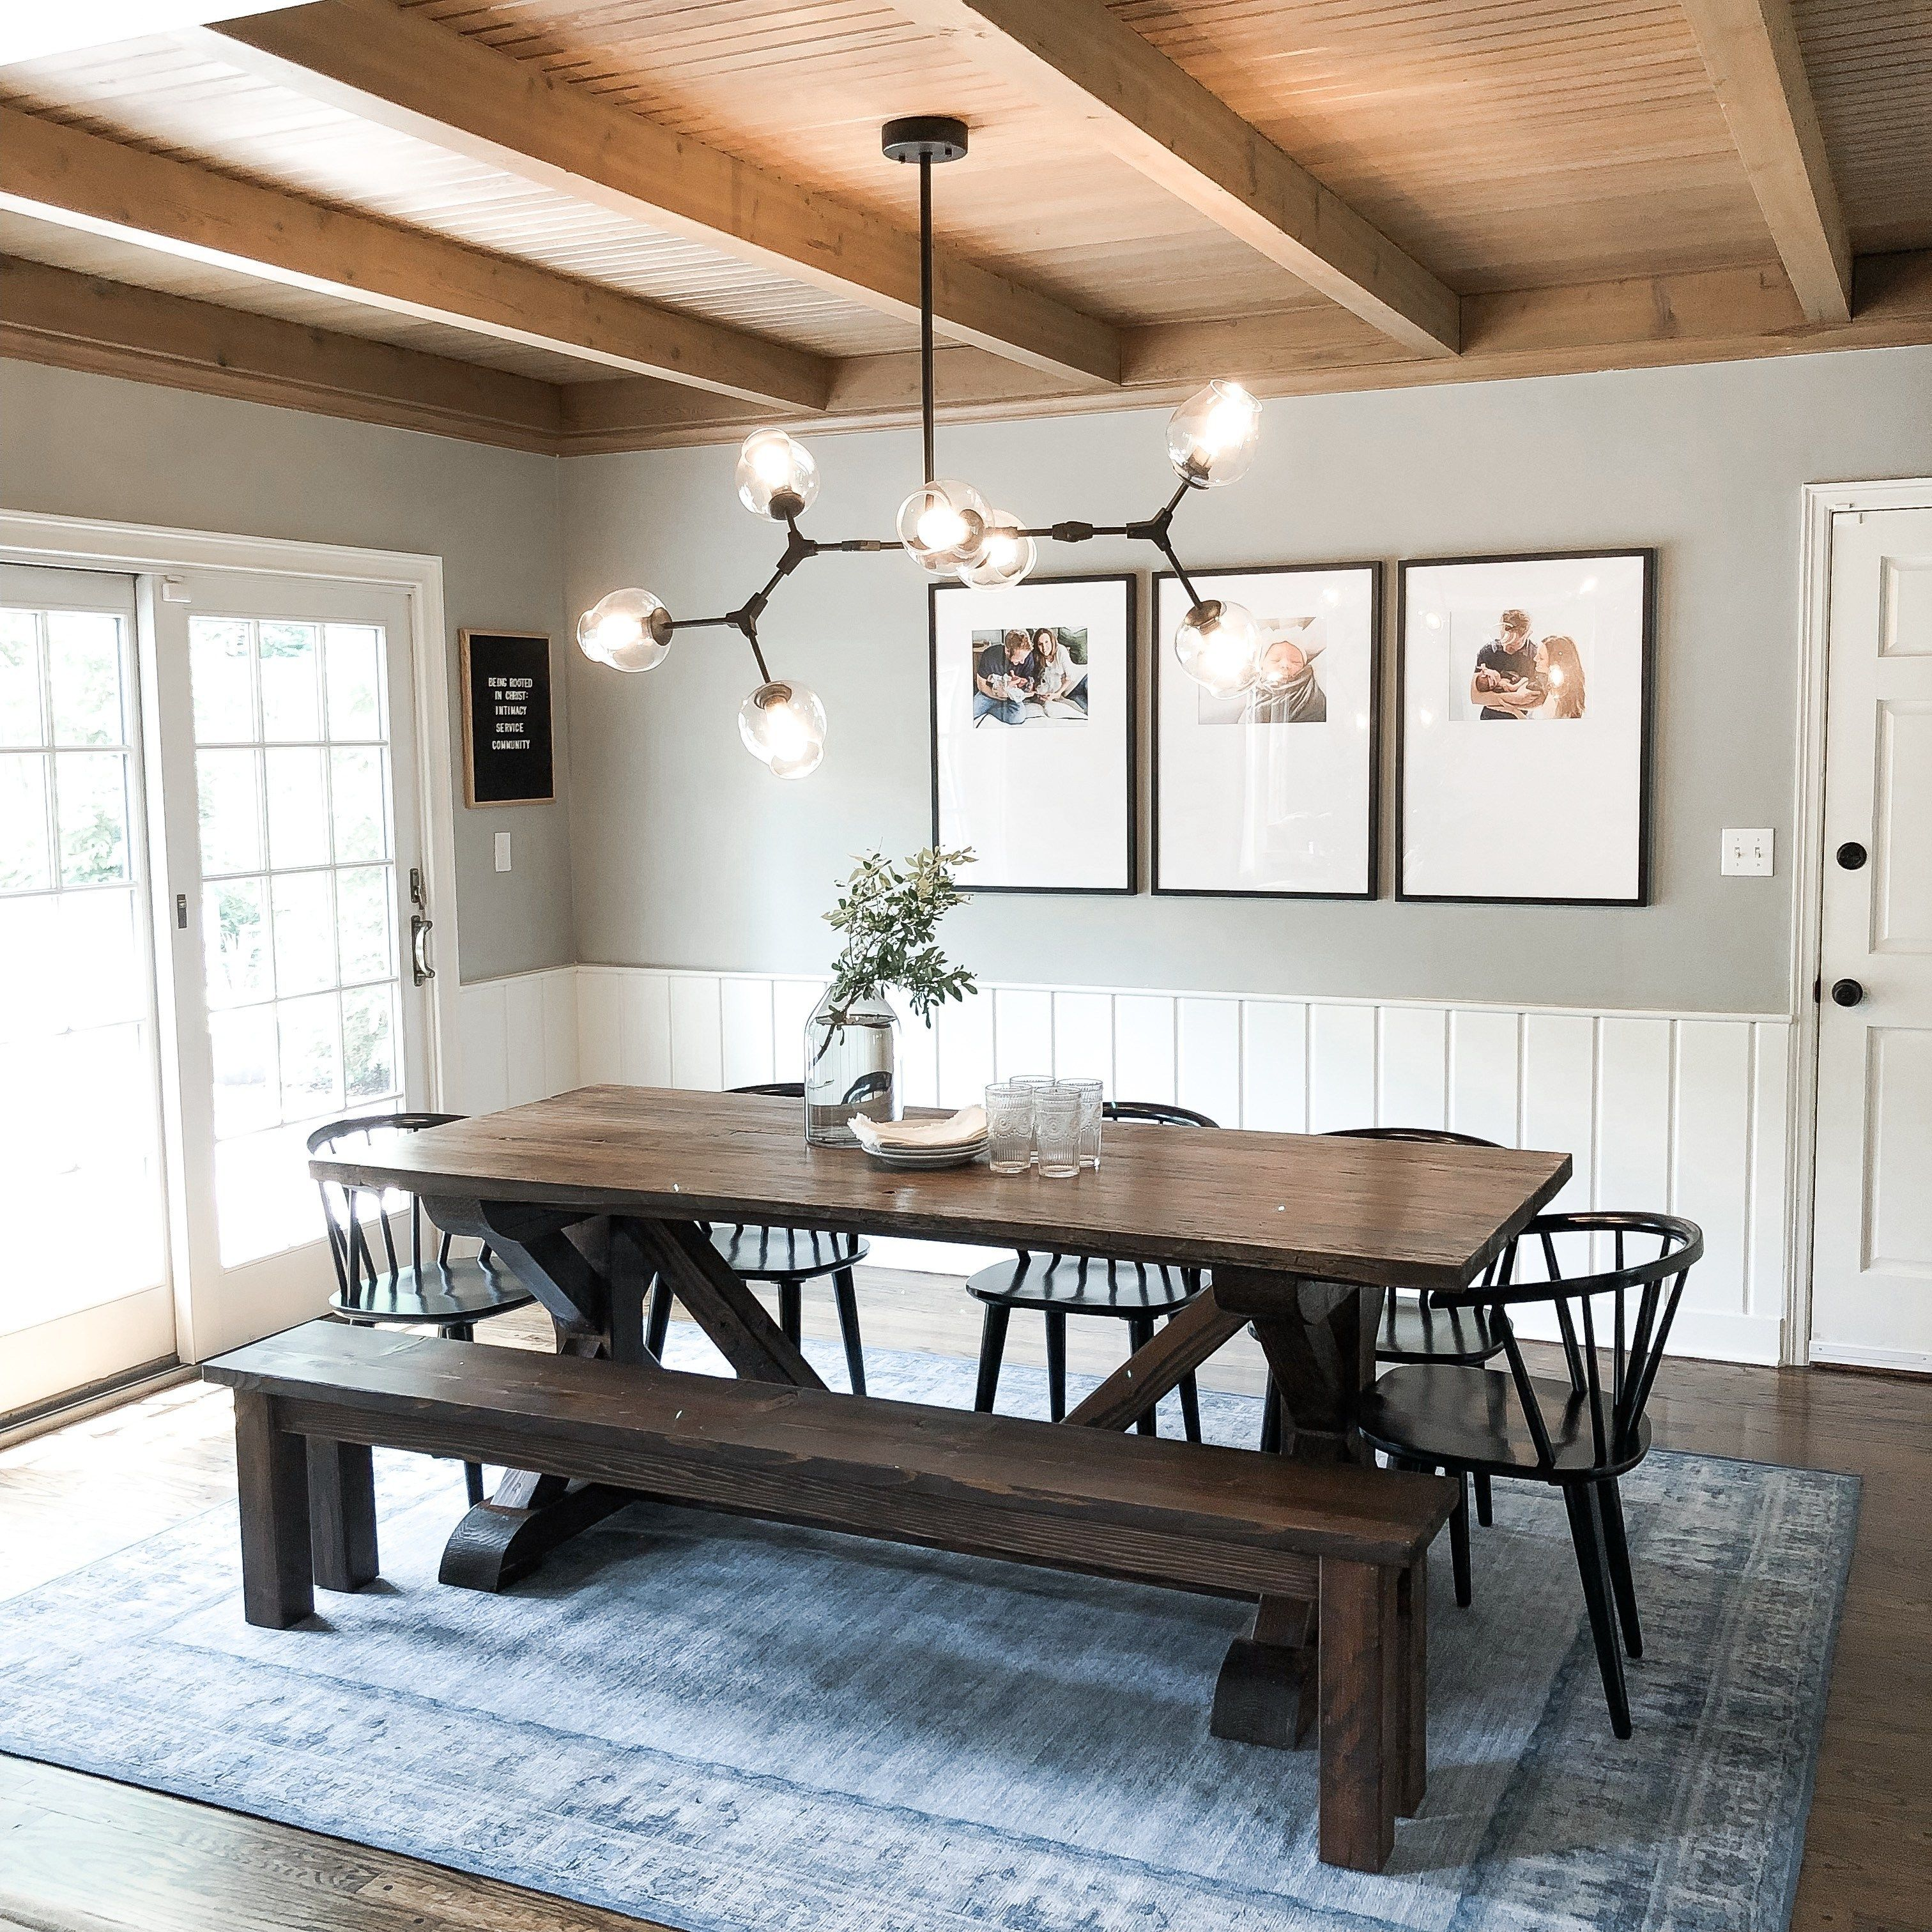 How to Blend Rustic & Modern Styles in the Home